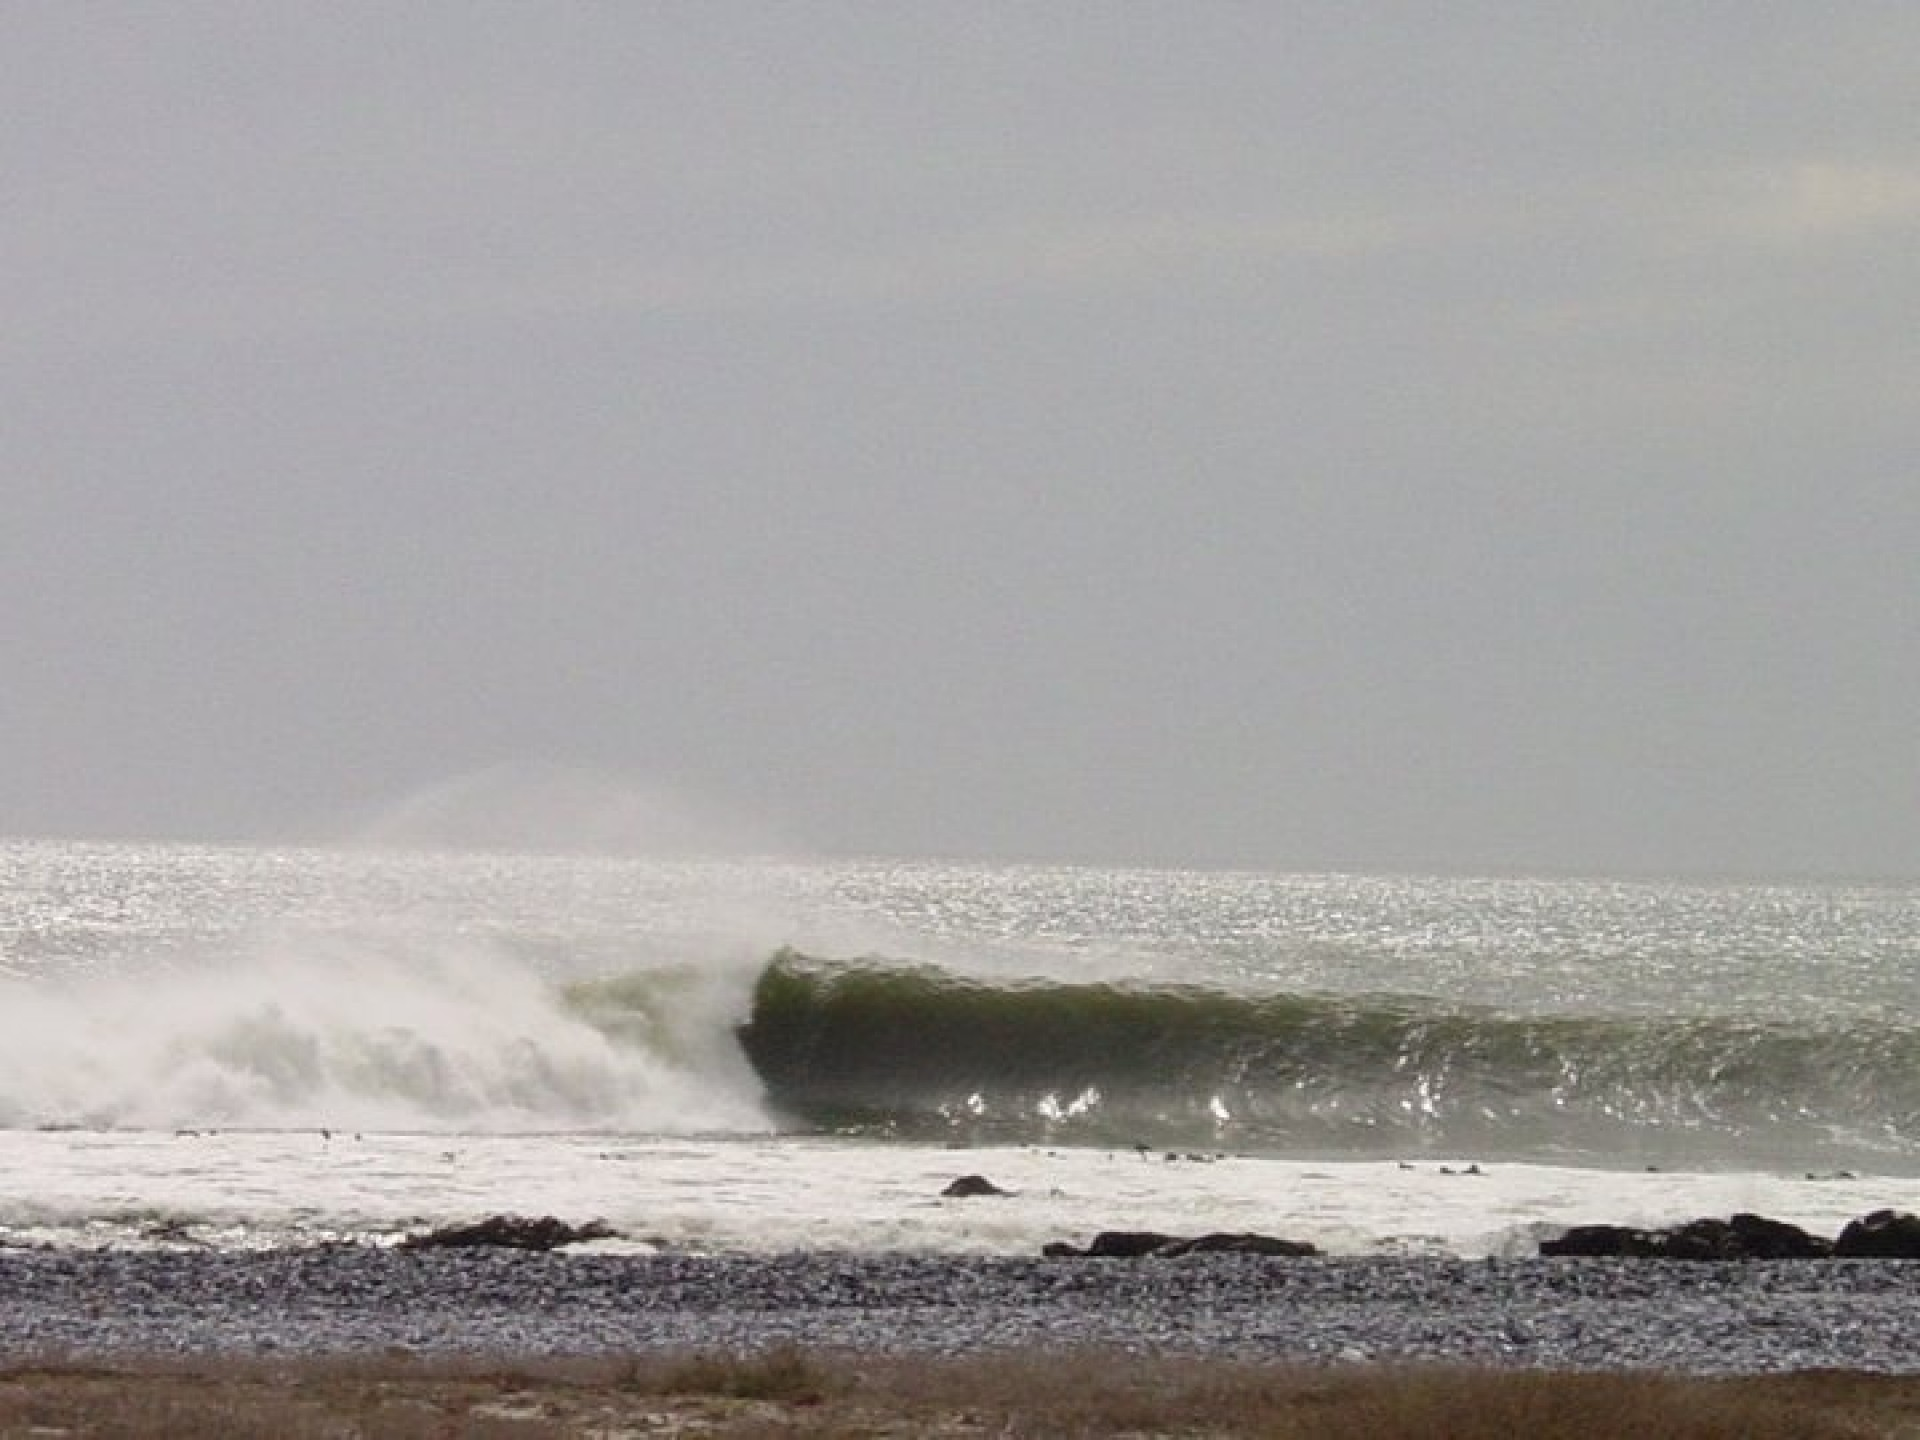 rumpiesSA's photo of Yzerfontein